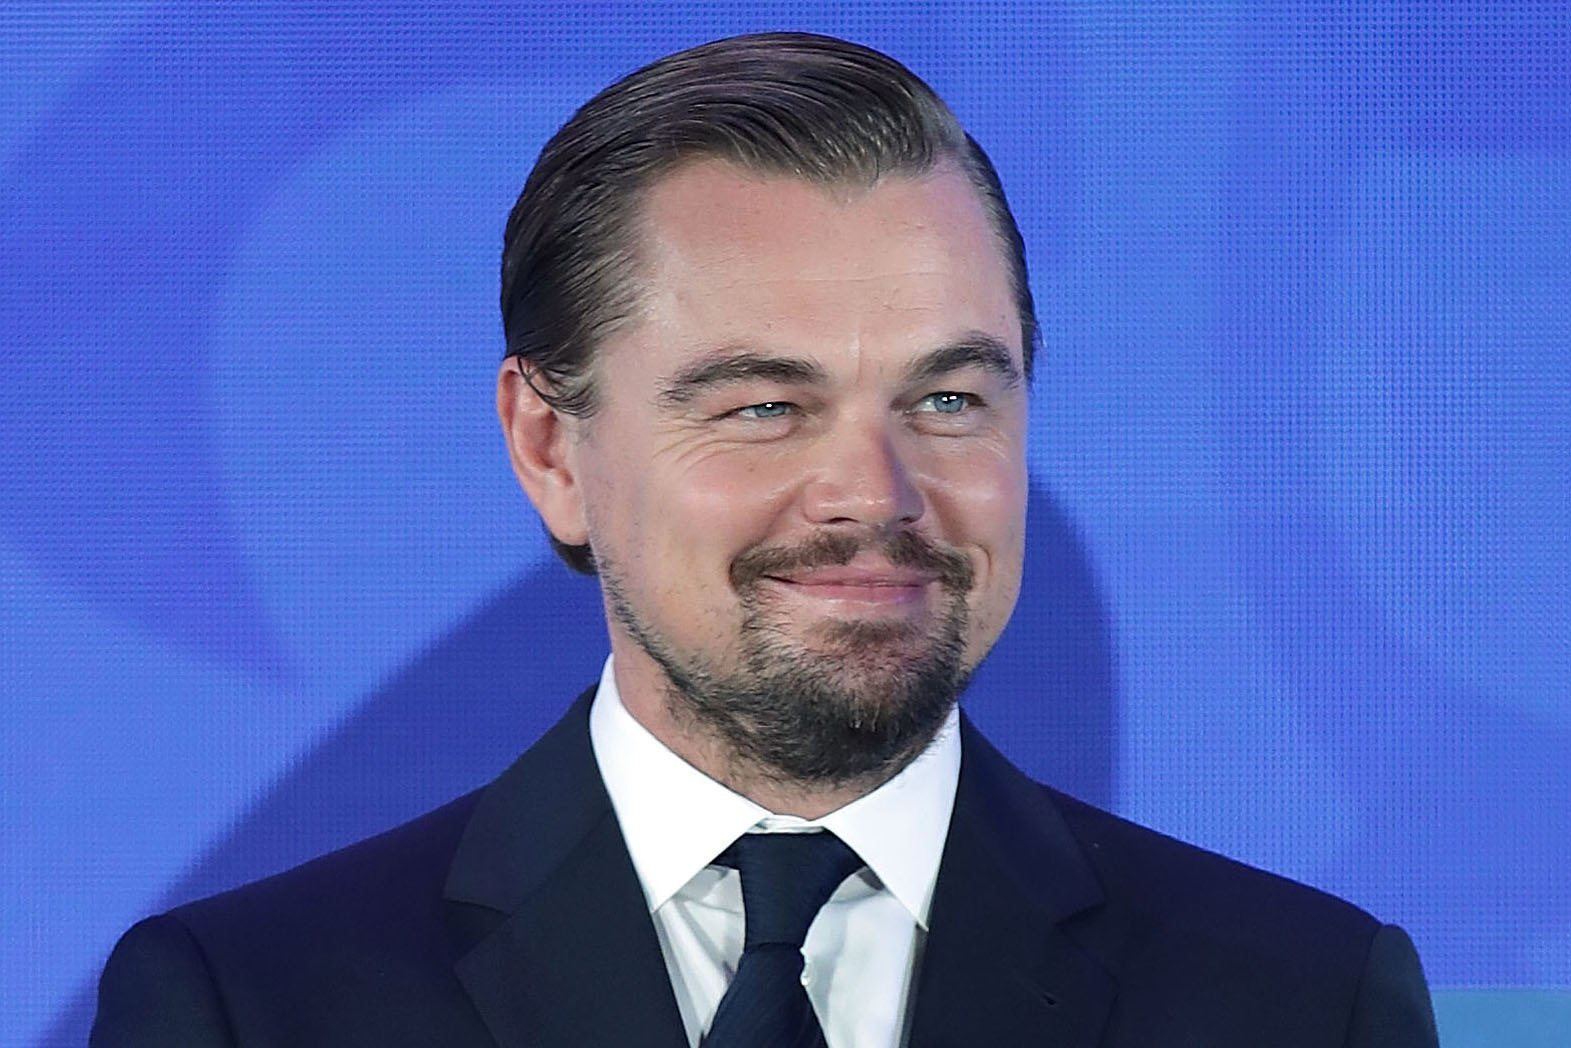 Leo DiCaprio gets first look at longtime friend's art show